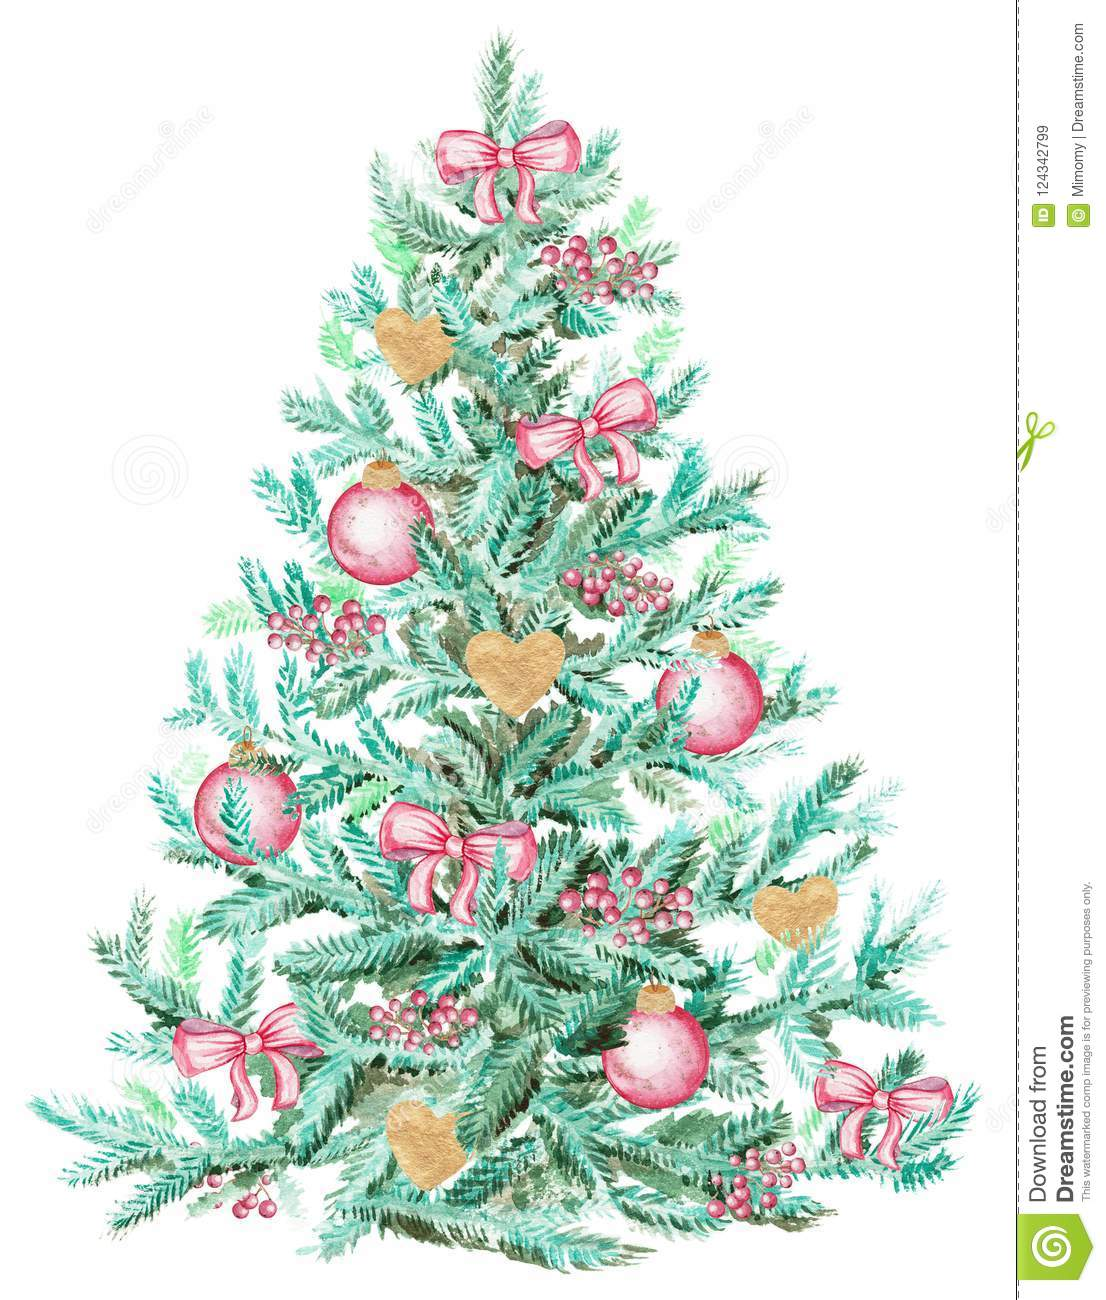 Watercolour Christmas Tree: Watercolor Christmas Tree With Bows, Berries And Balls